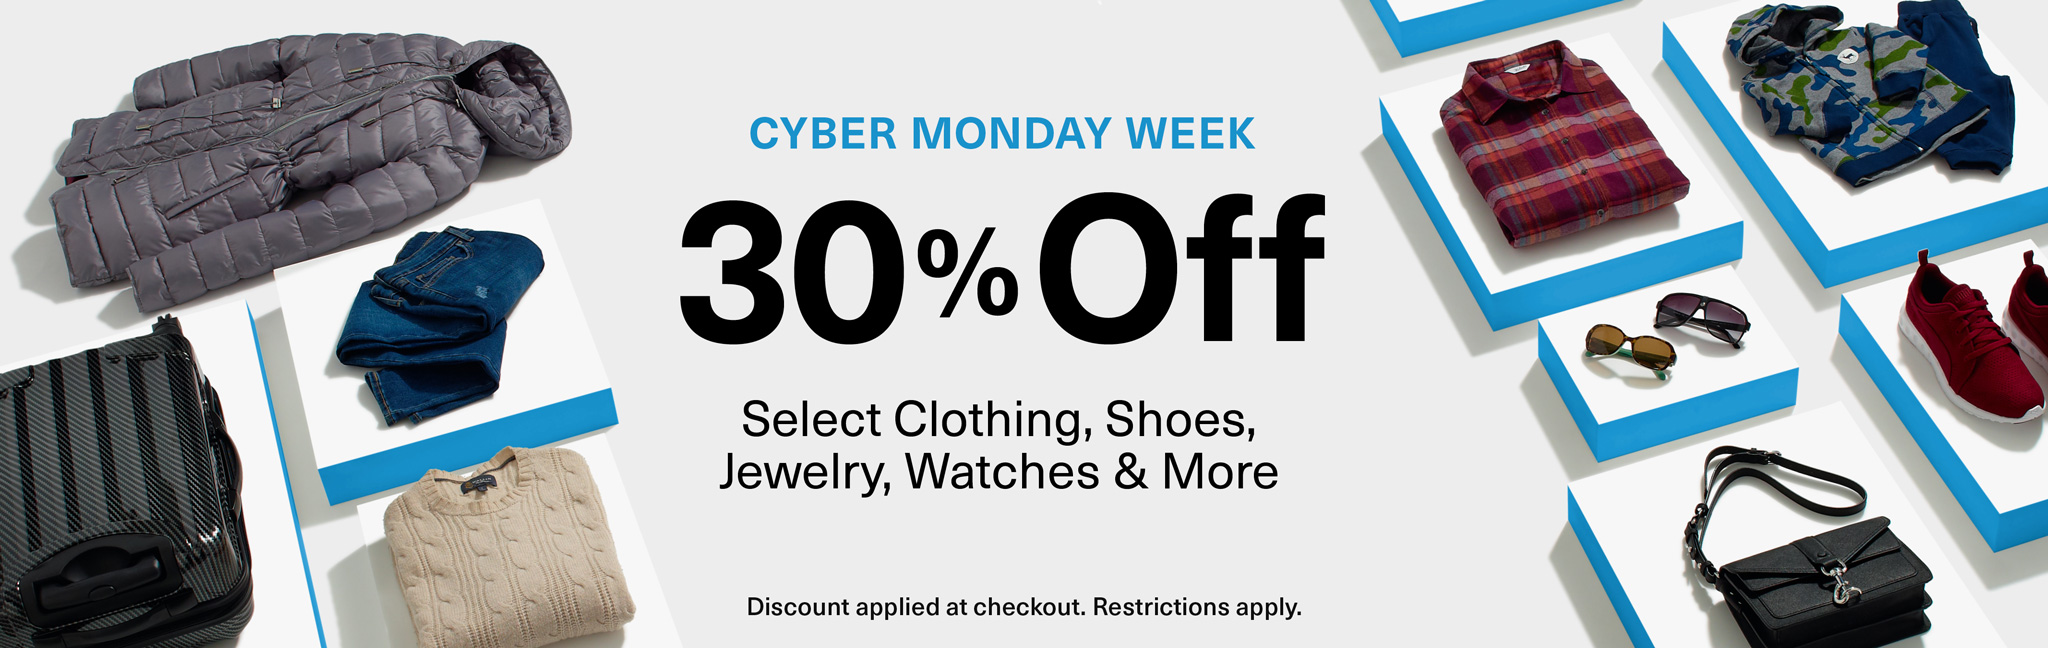 Cyber monday extra 30 off clothing kicks watches and for Cyber monday deals mens dress shirts